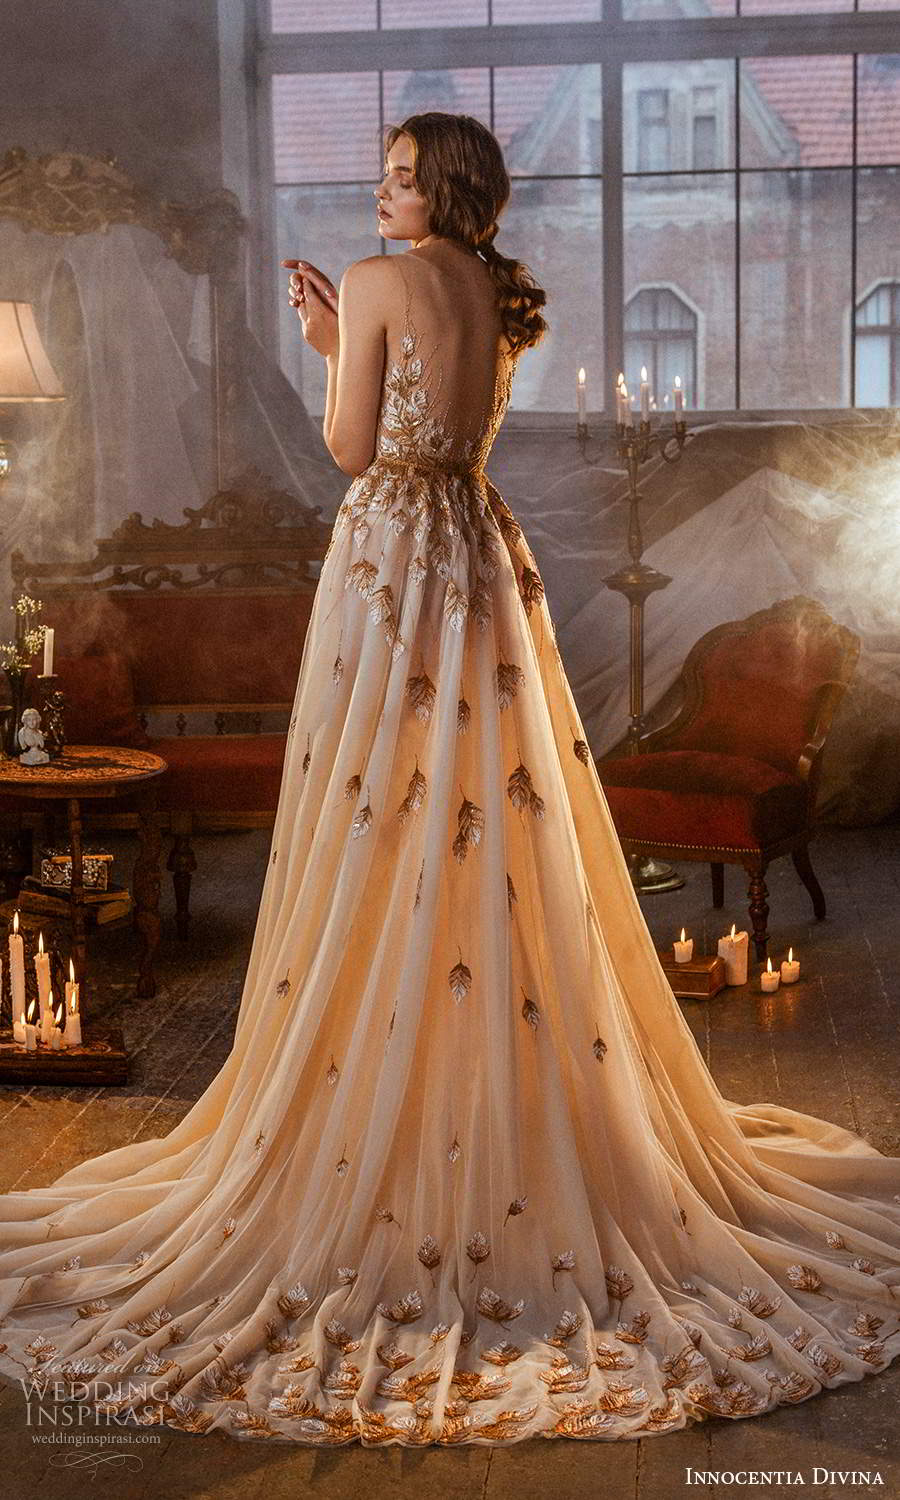 innocentia divina 2021 bridal sleeveless illusion straps v neckline embellished bodice a line ball gown wedding dress chapel train blush (6) bv